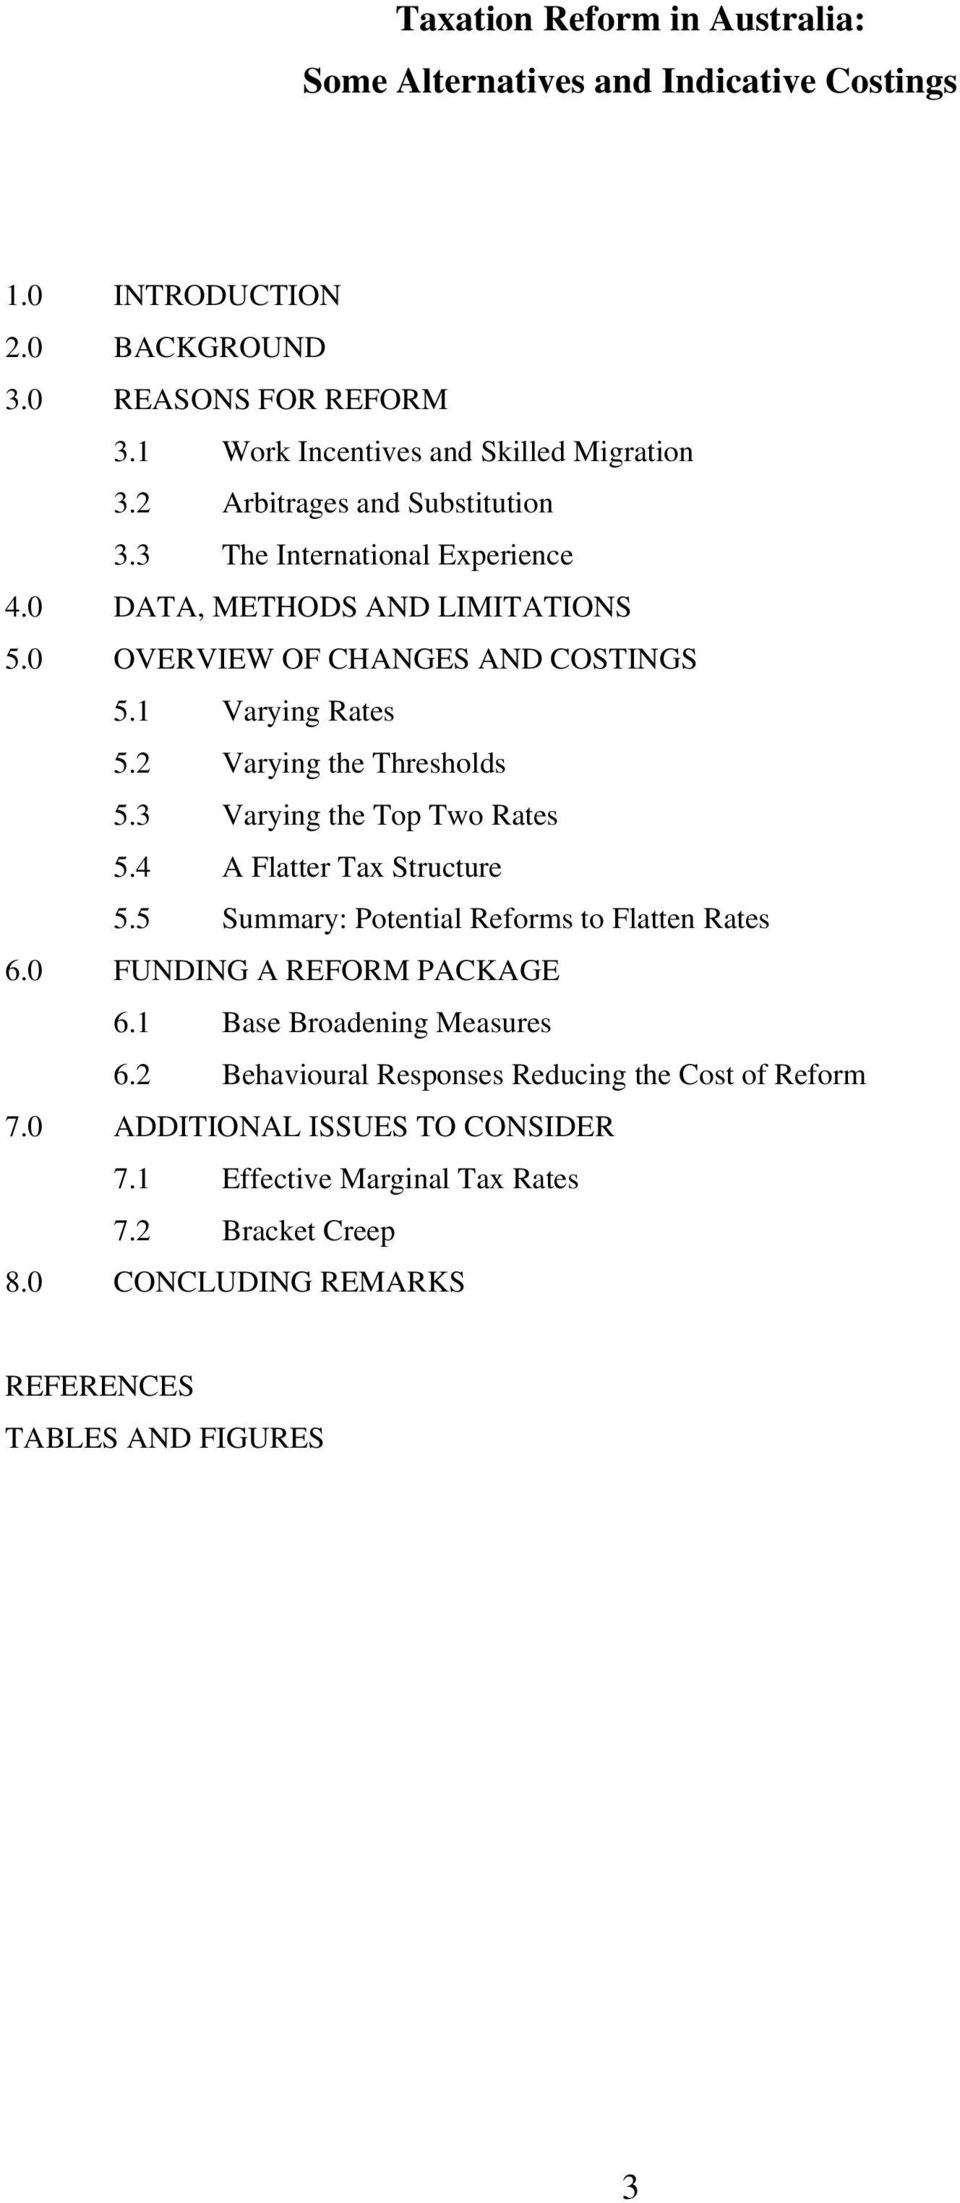 2 Varying the Thresholds 5.3 Varying the Top Two Rates 5.4 A Flatter Tax Structure 5.5 Summary: Potential Reforms to Flatten Rates 6.0 FUNDING A REFORM PACKAGE 6.